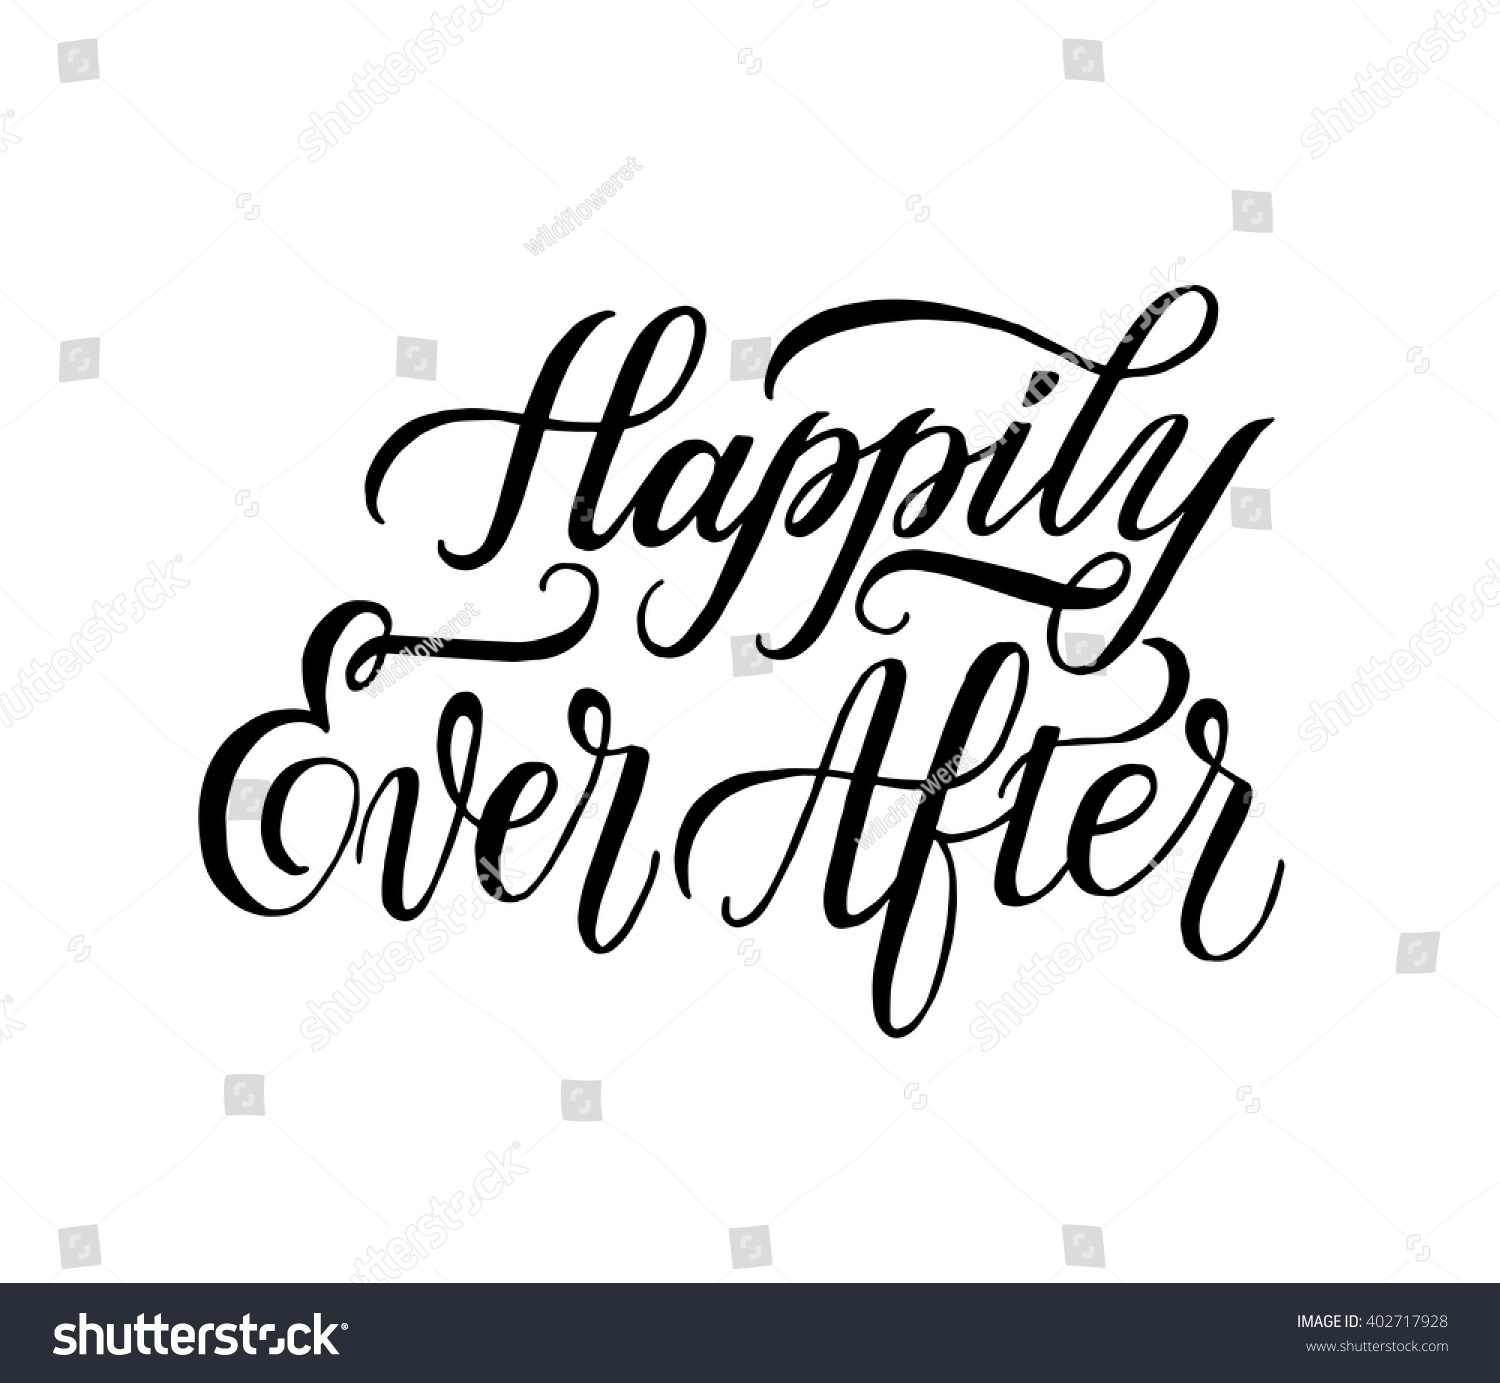 Happily Ever After Hand Drawn Element Stock Vector. Wedding Announcements Online Free. Wedding Ideas For Remembering Loved Ones. Wedding Supplies Austin Tx. Wedding Programs Guide